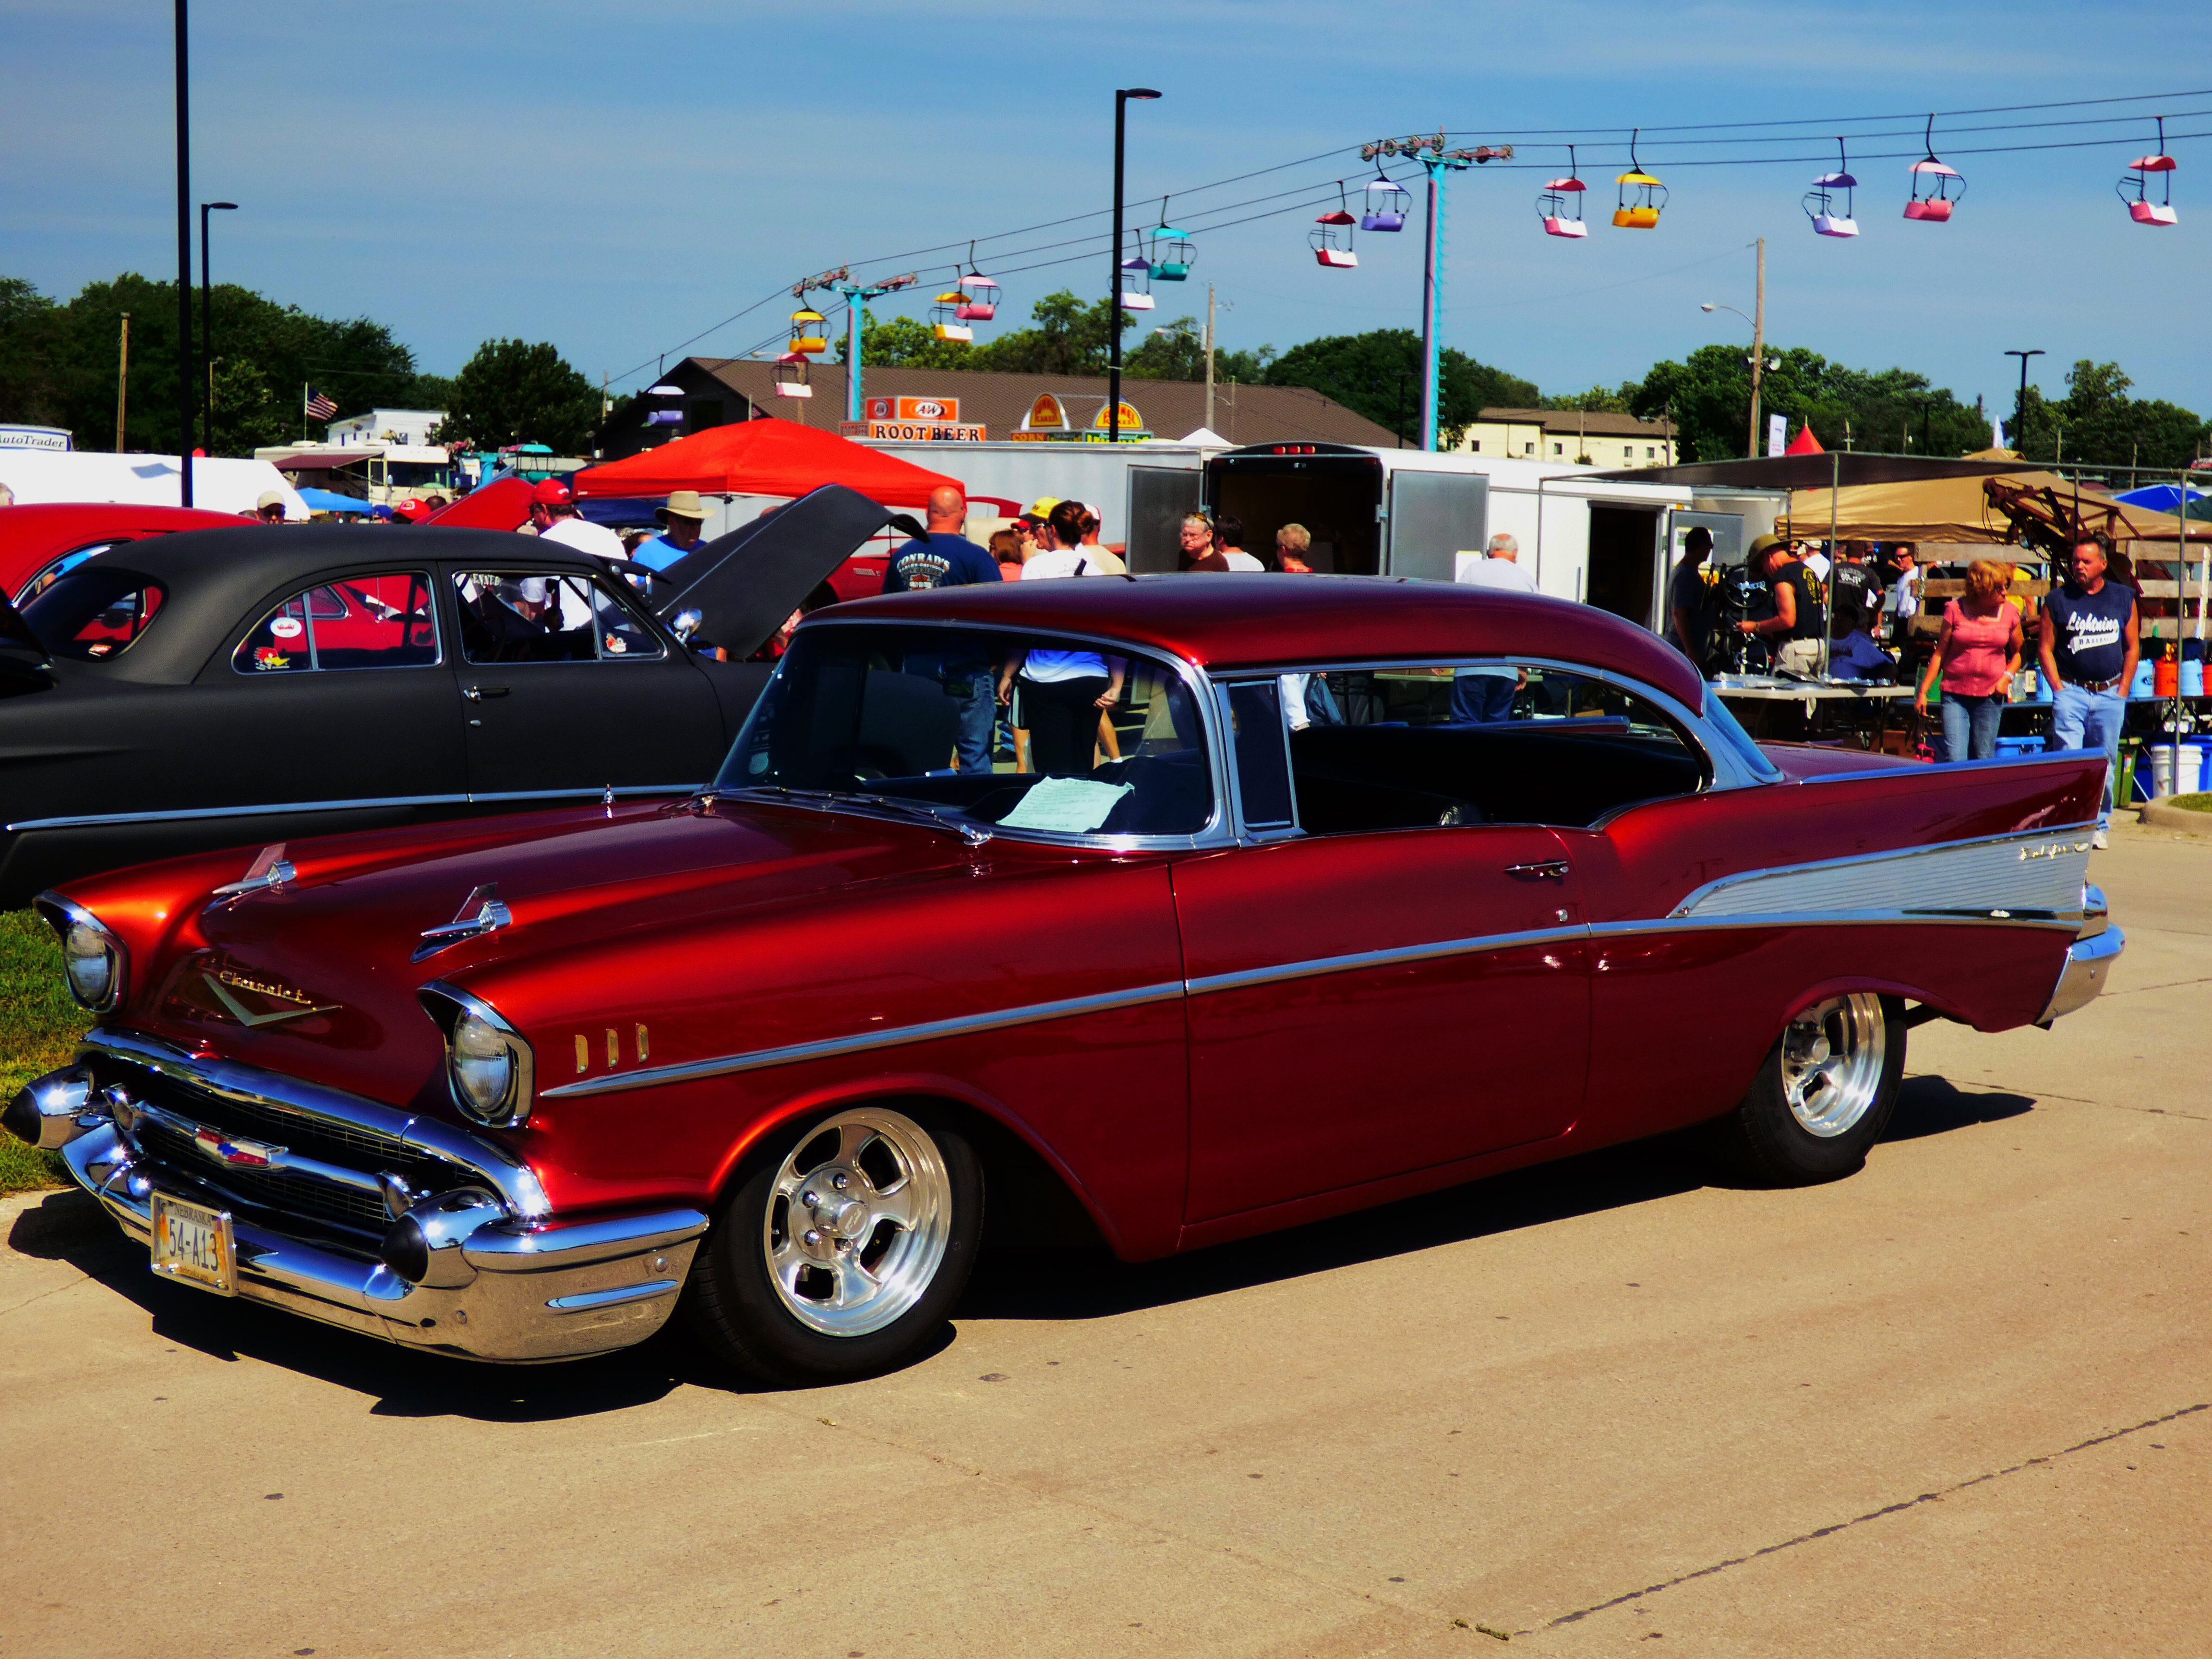 small 4 door cars with 1957 Chevrolet Bel Air on 1957 Chevrolet Bel Air additionally Glas 1004 in addition The Hyundai Pony Koreas First Car further File BMW Classic likewise Hyundai Getz.